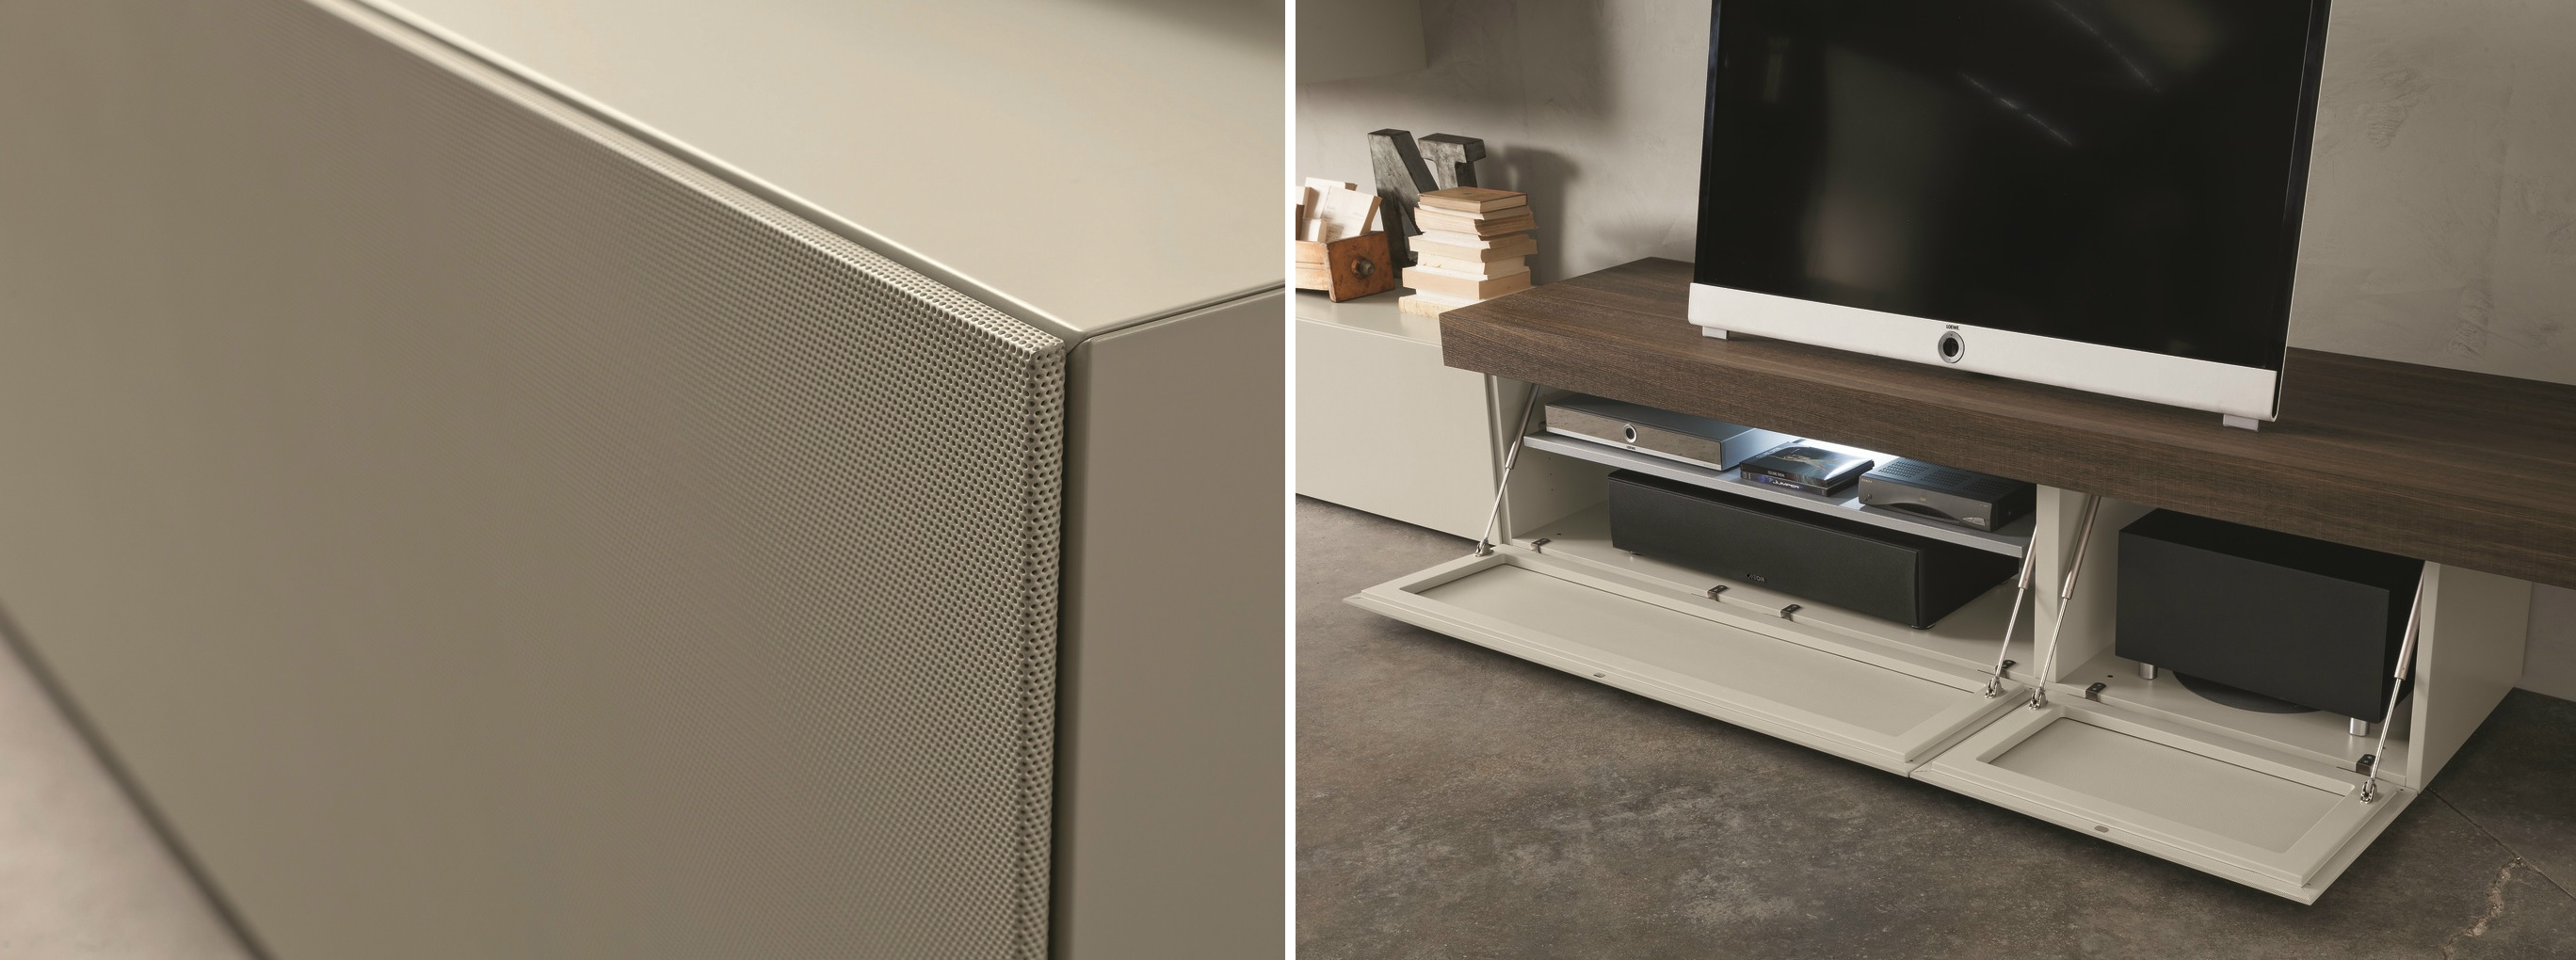 Modulart Lacquered Metal Cabinet